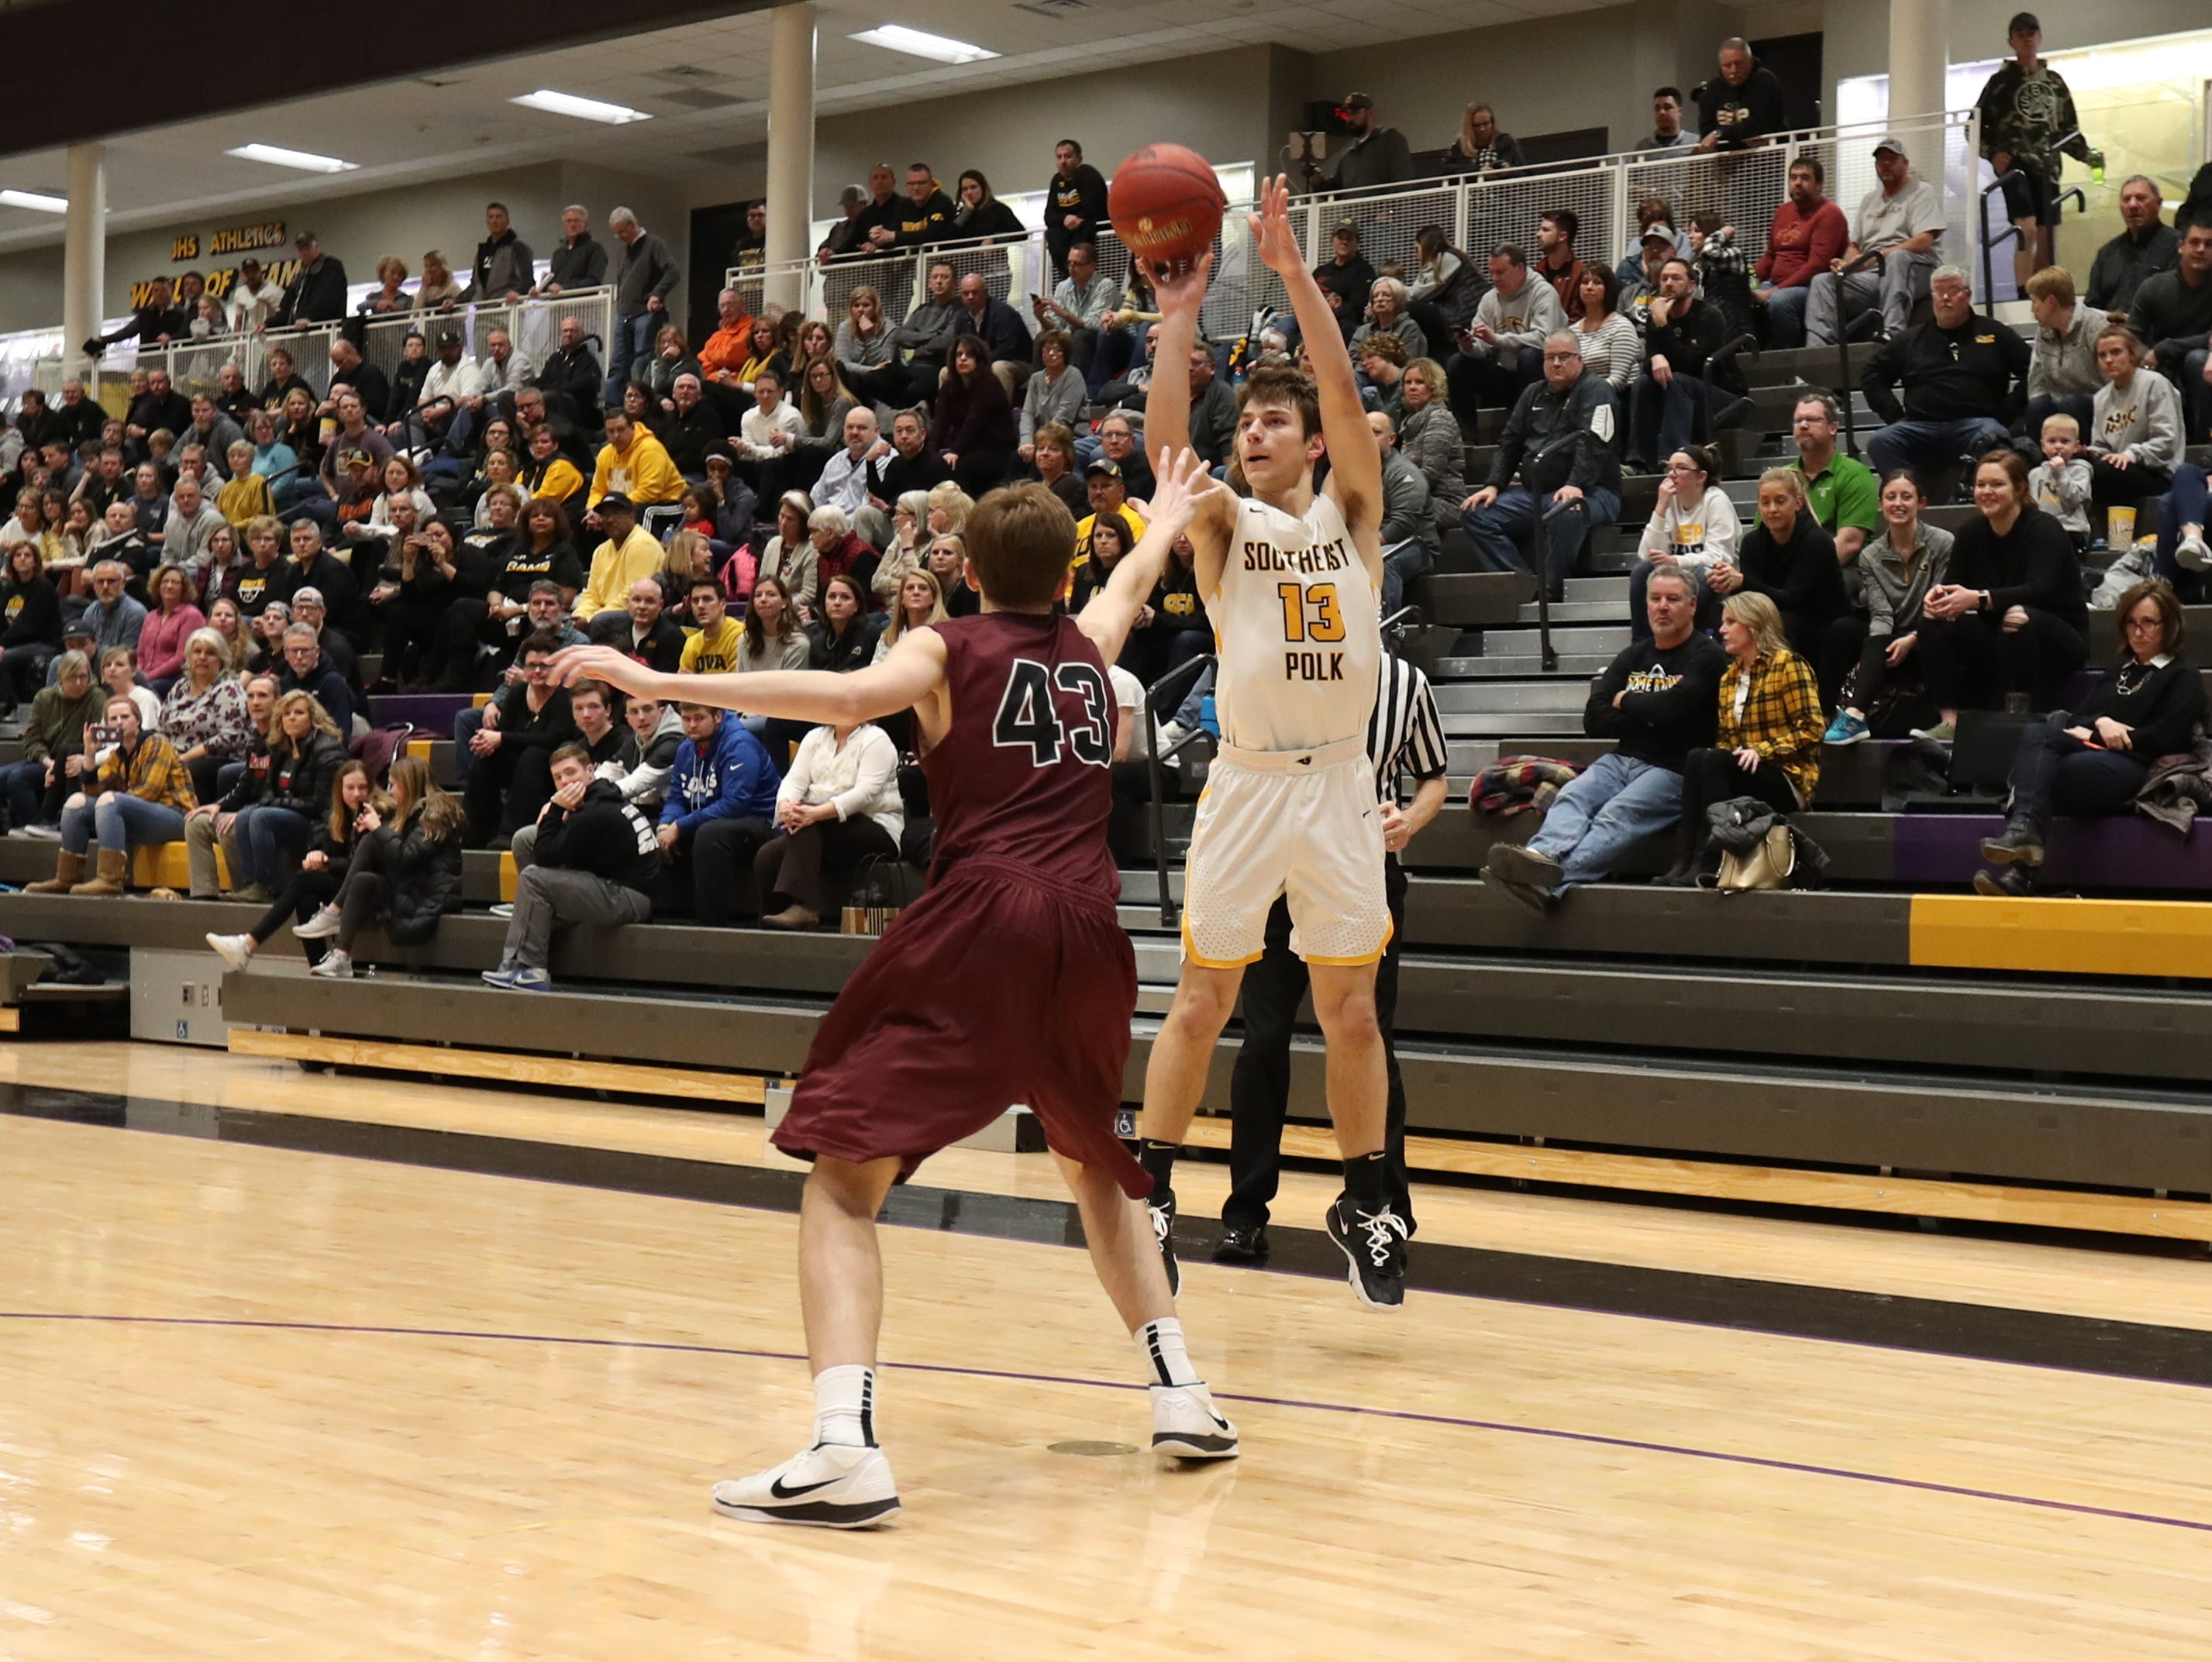 Southeast Polk's Dominic Caggiano (13) shoots over the top of Dowling Catholic's Drew Daniel (43) during their game at Johnston High School in Johnston, Iowa, on Tuesday, Feb. 26, 2019. Dowling won the game 44-40 to advance to state.